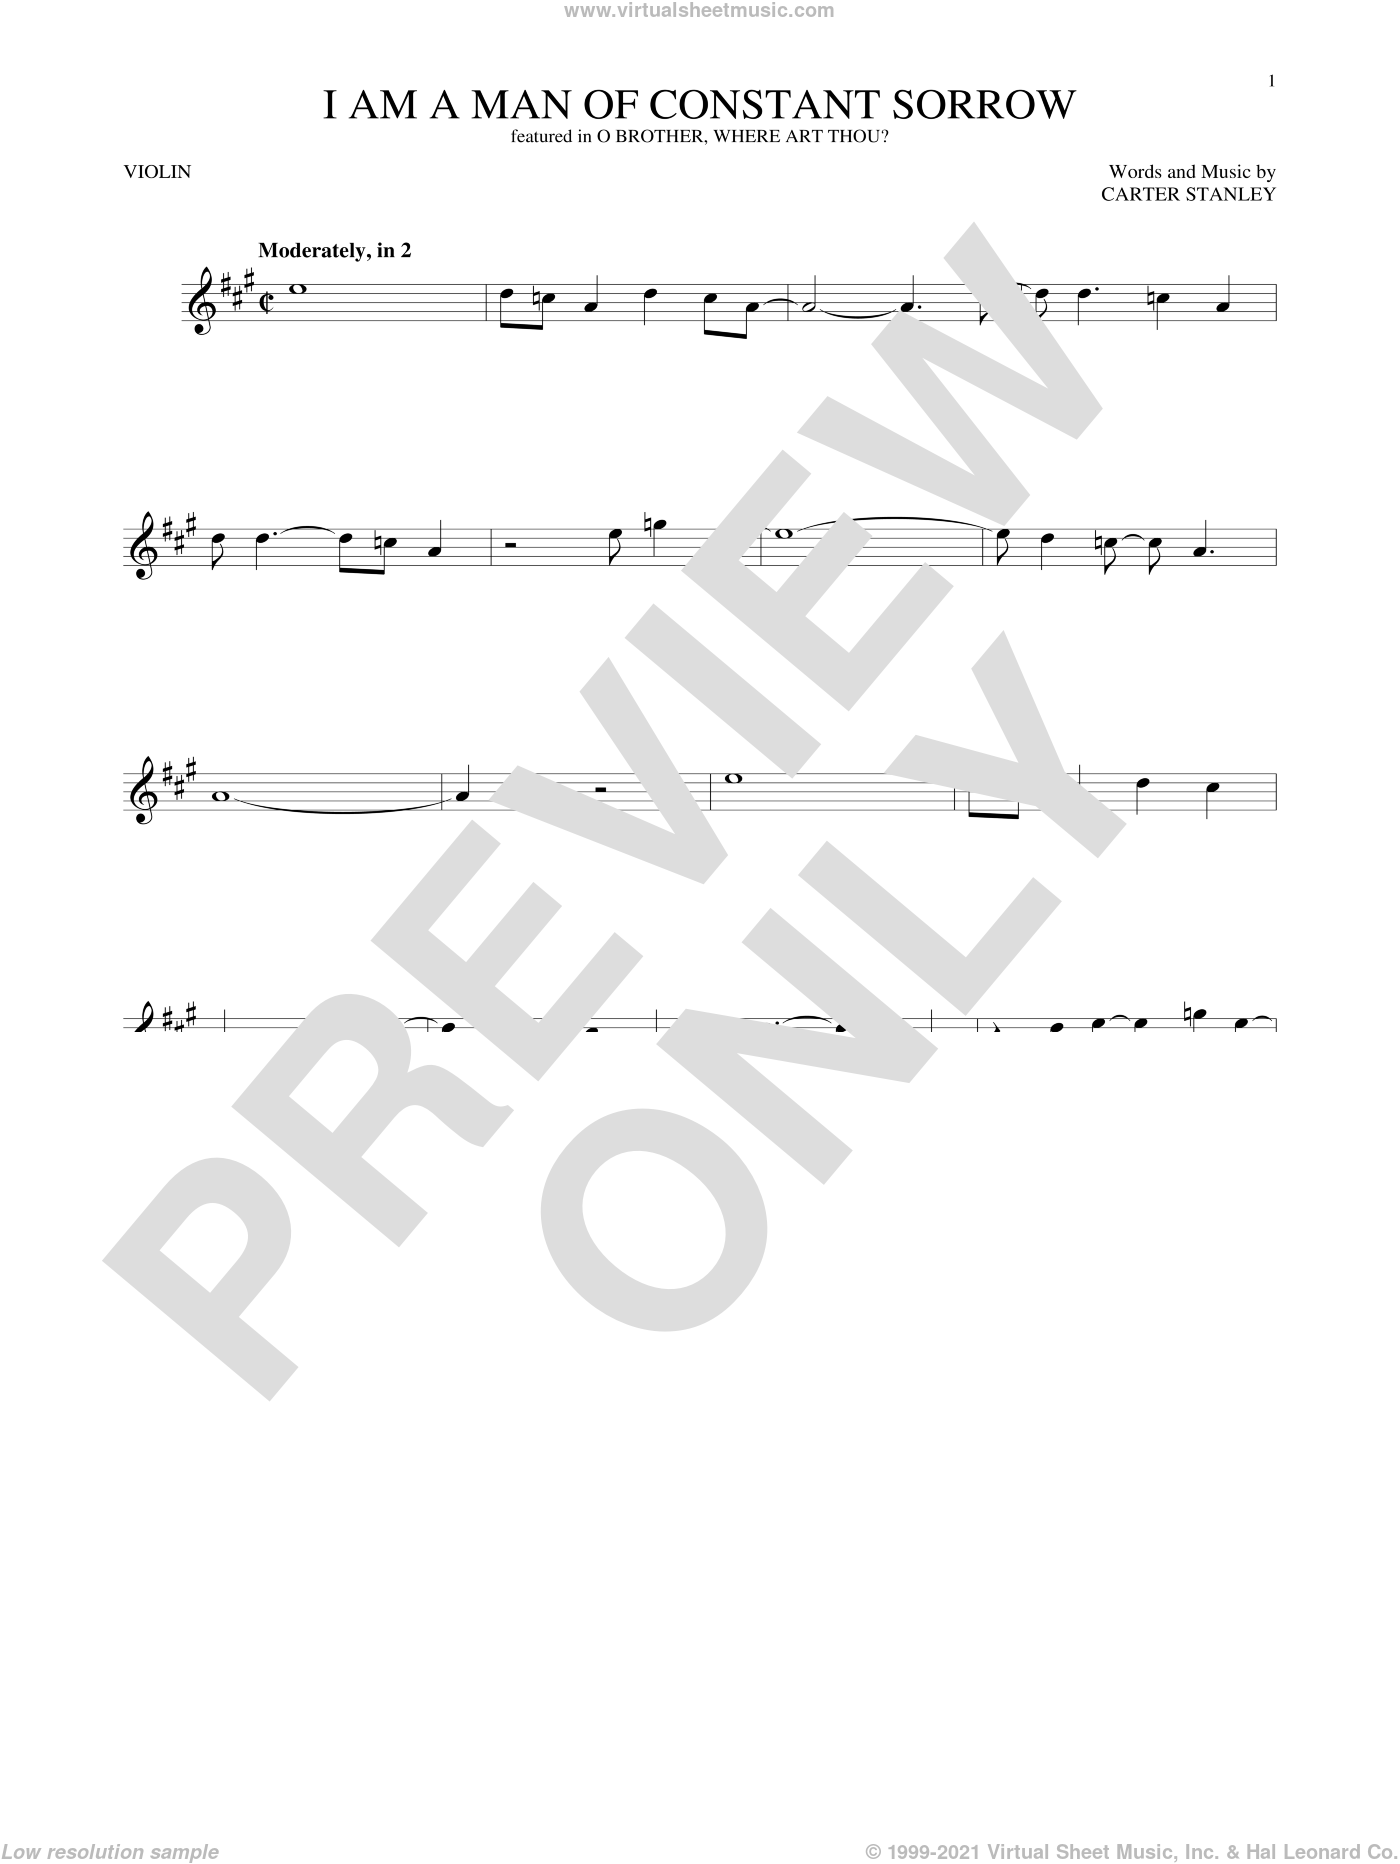 I Am A Man Of Constant Sorrow sheet music for violin solo by Carter Stanley, Charm City Devils and The Soggy Bottom Boys, intermediate violin. Score Image Preview.